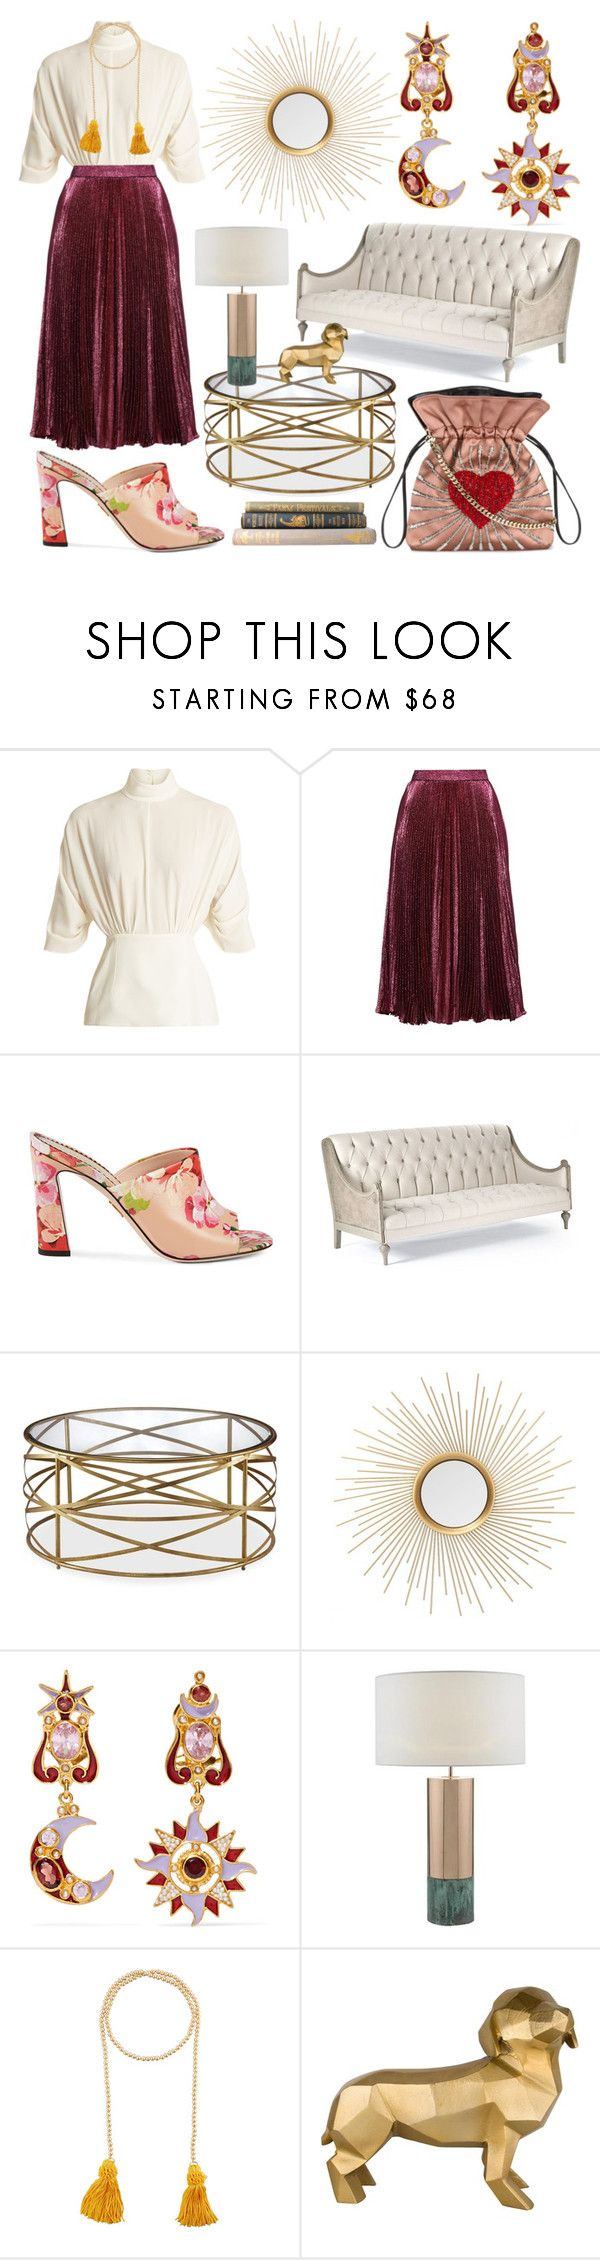 """Crushed Velvet"" by heybigtrender on Polyvore featuring Emilia Wickstead, Christopher Kane, Gucci, Diego Percossi Papi, Kenneth Jay Lane and Les Petits Joueurs"